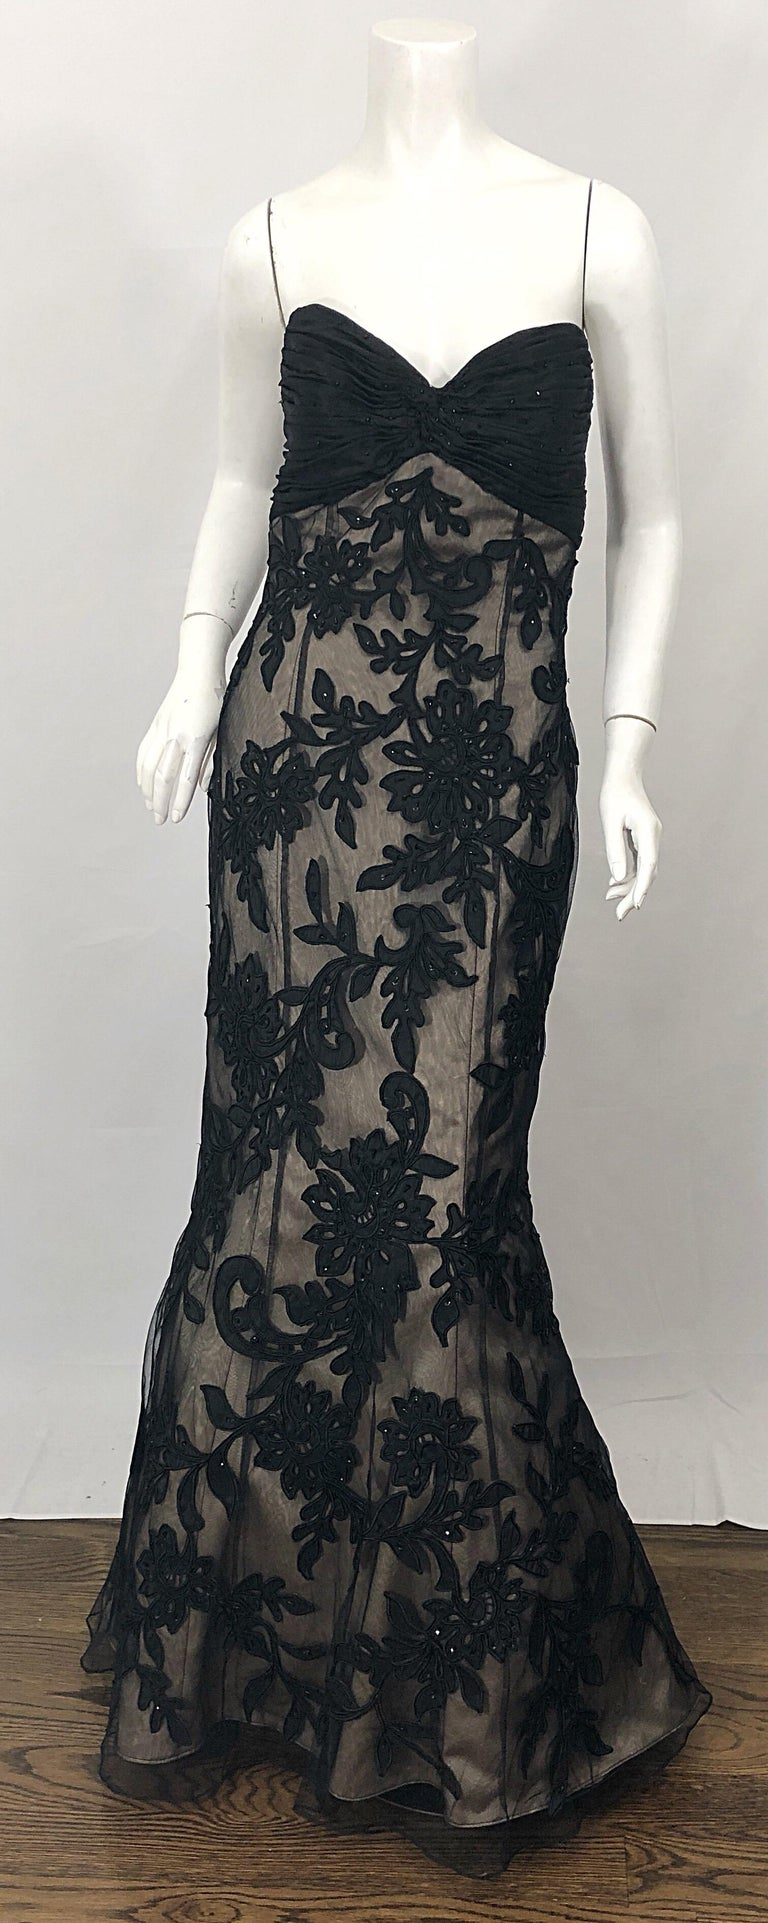 Vintage Bill Blass Couture Size 4 / 6 Black + Nude Beaded Strapless Mermaid Gown For Sale 8